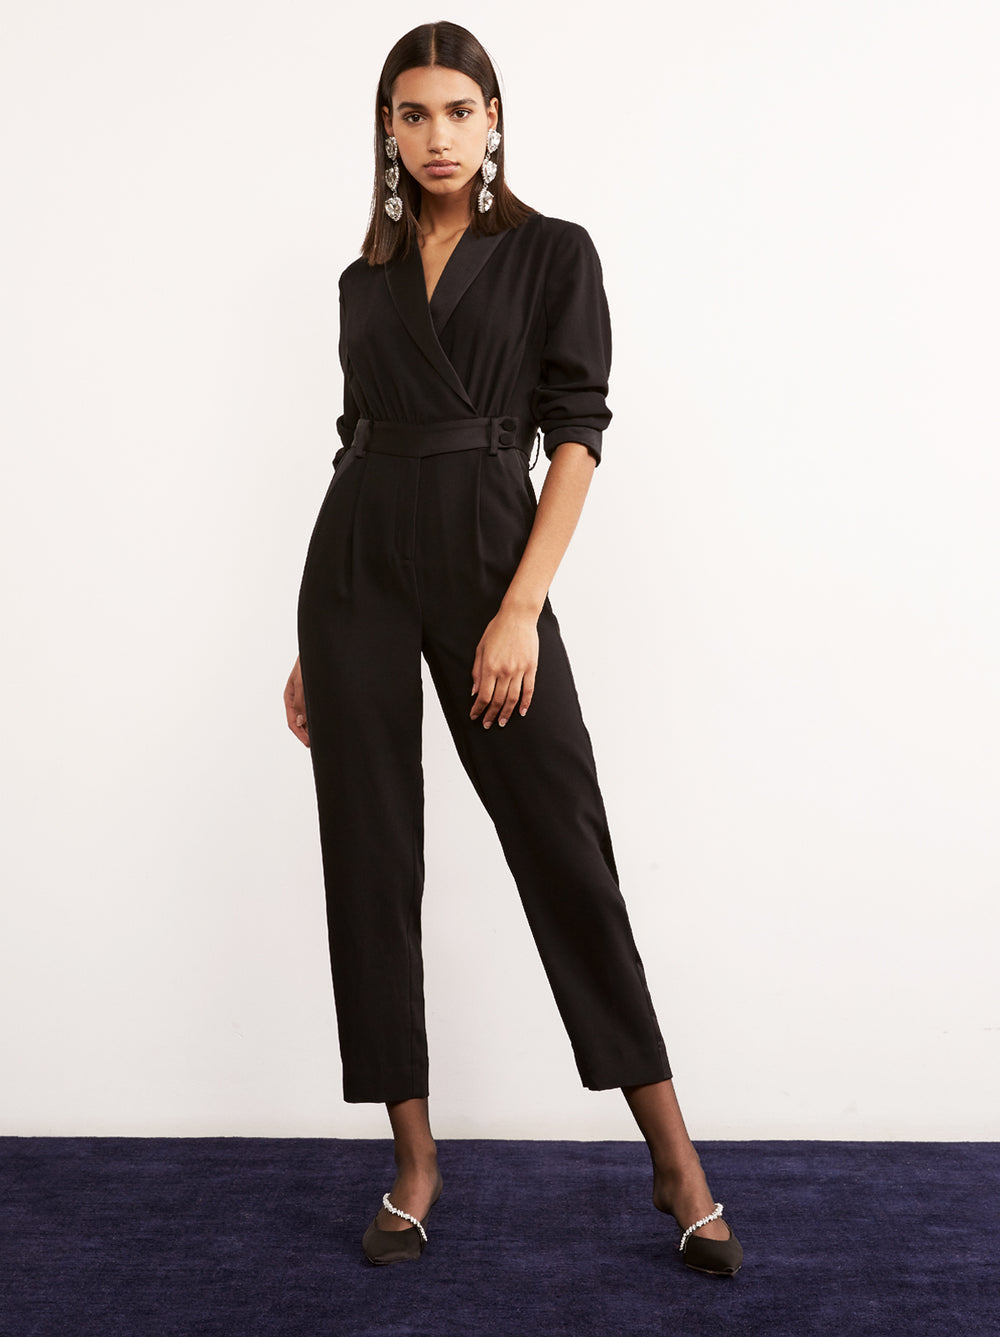 Amandine Black Tailored Tuxedo Jumpsuit by KITRI Studio